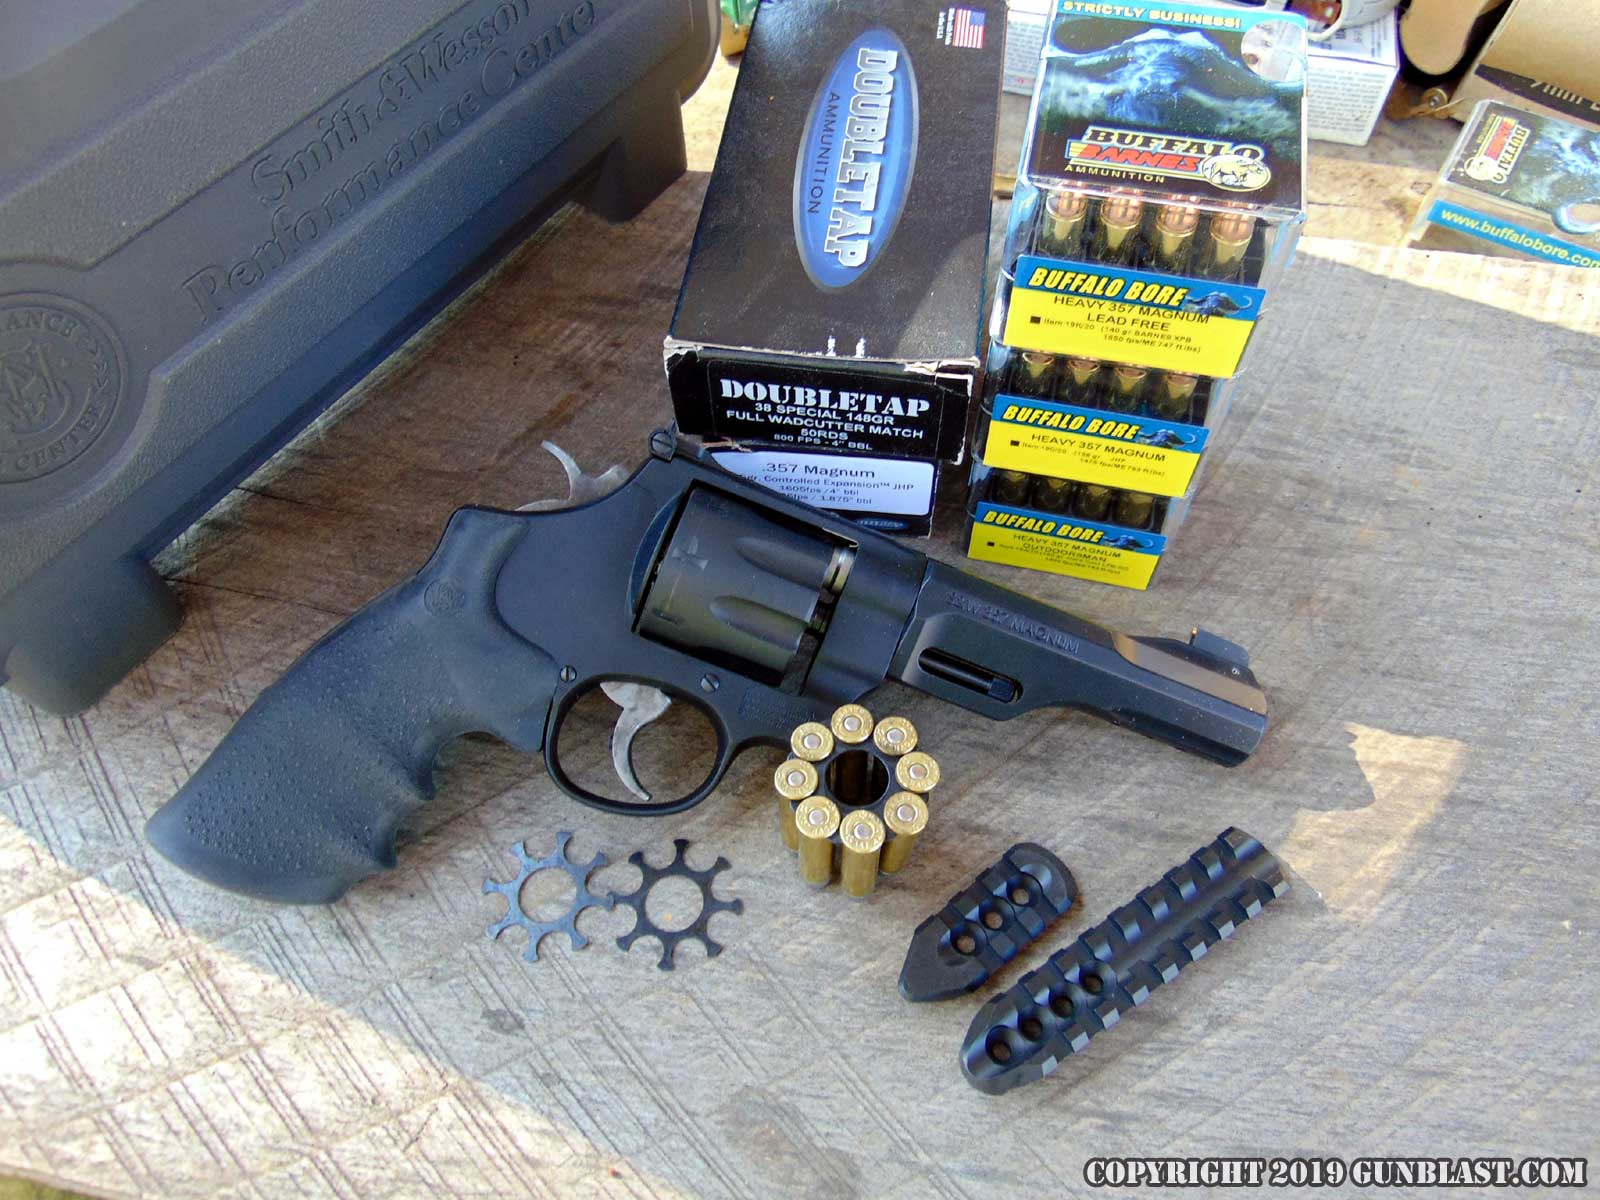 Smith & Wesson Performance Center Model 327 TRR8 Eight-Shot 357